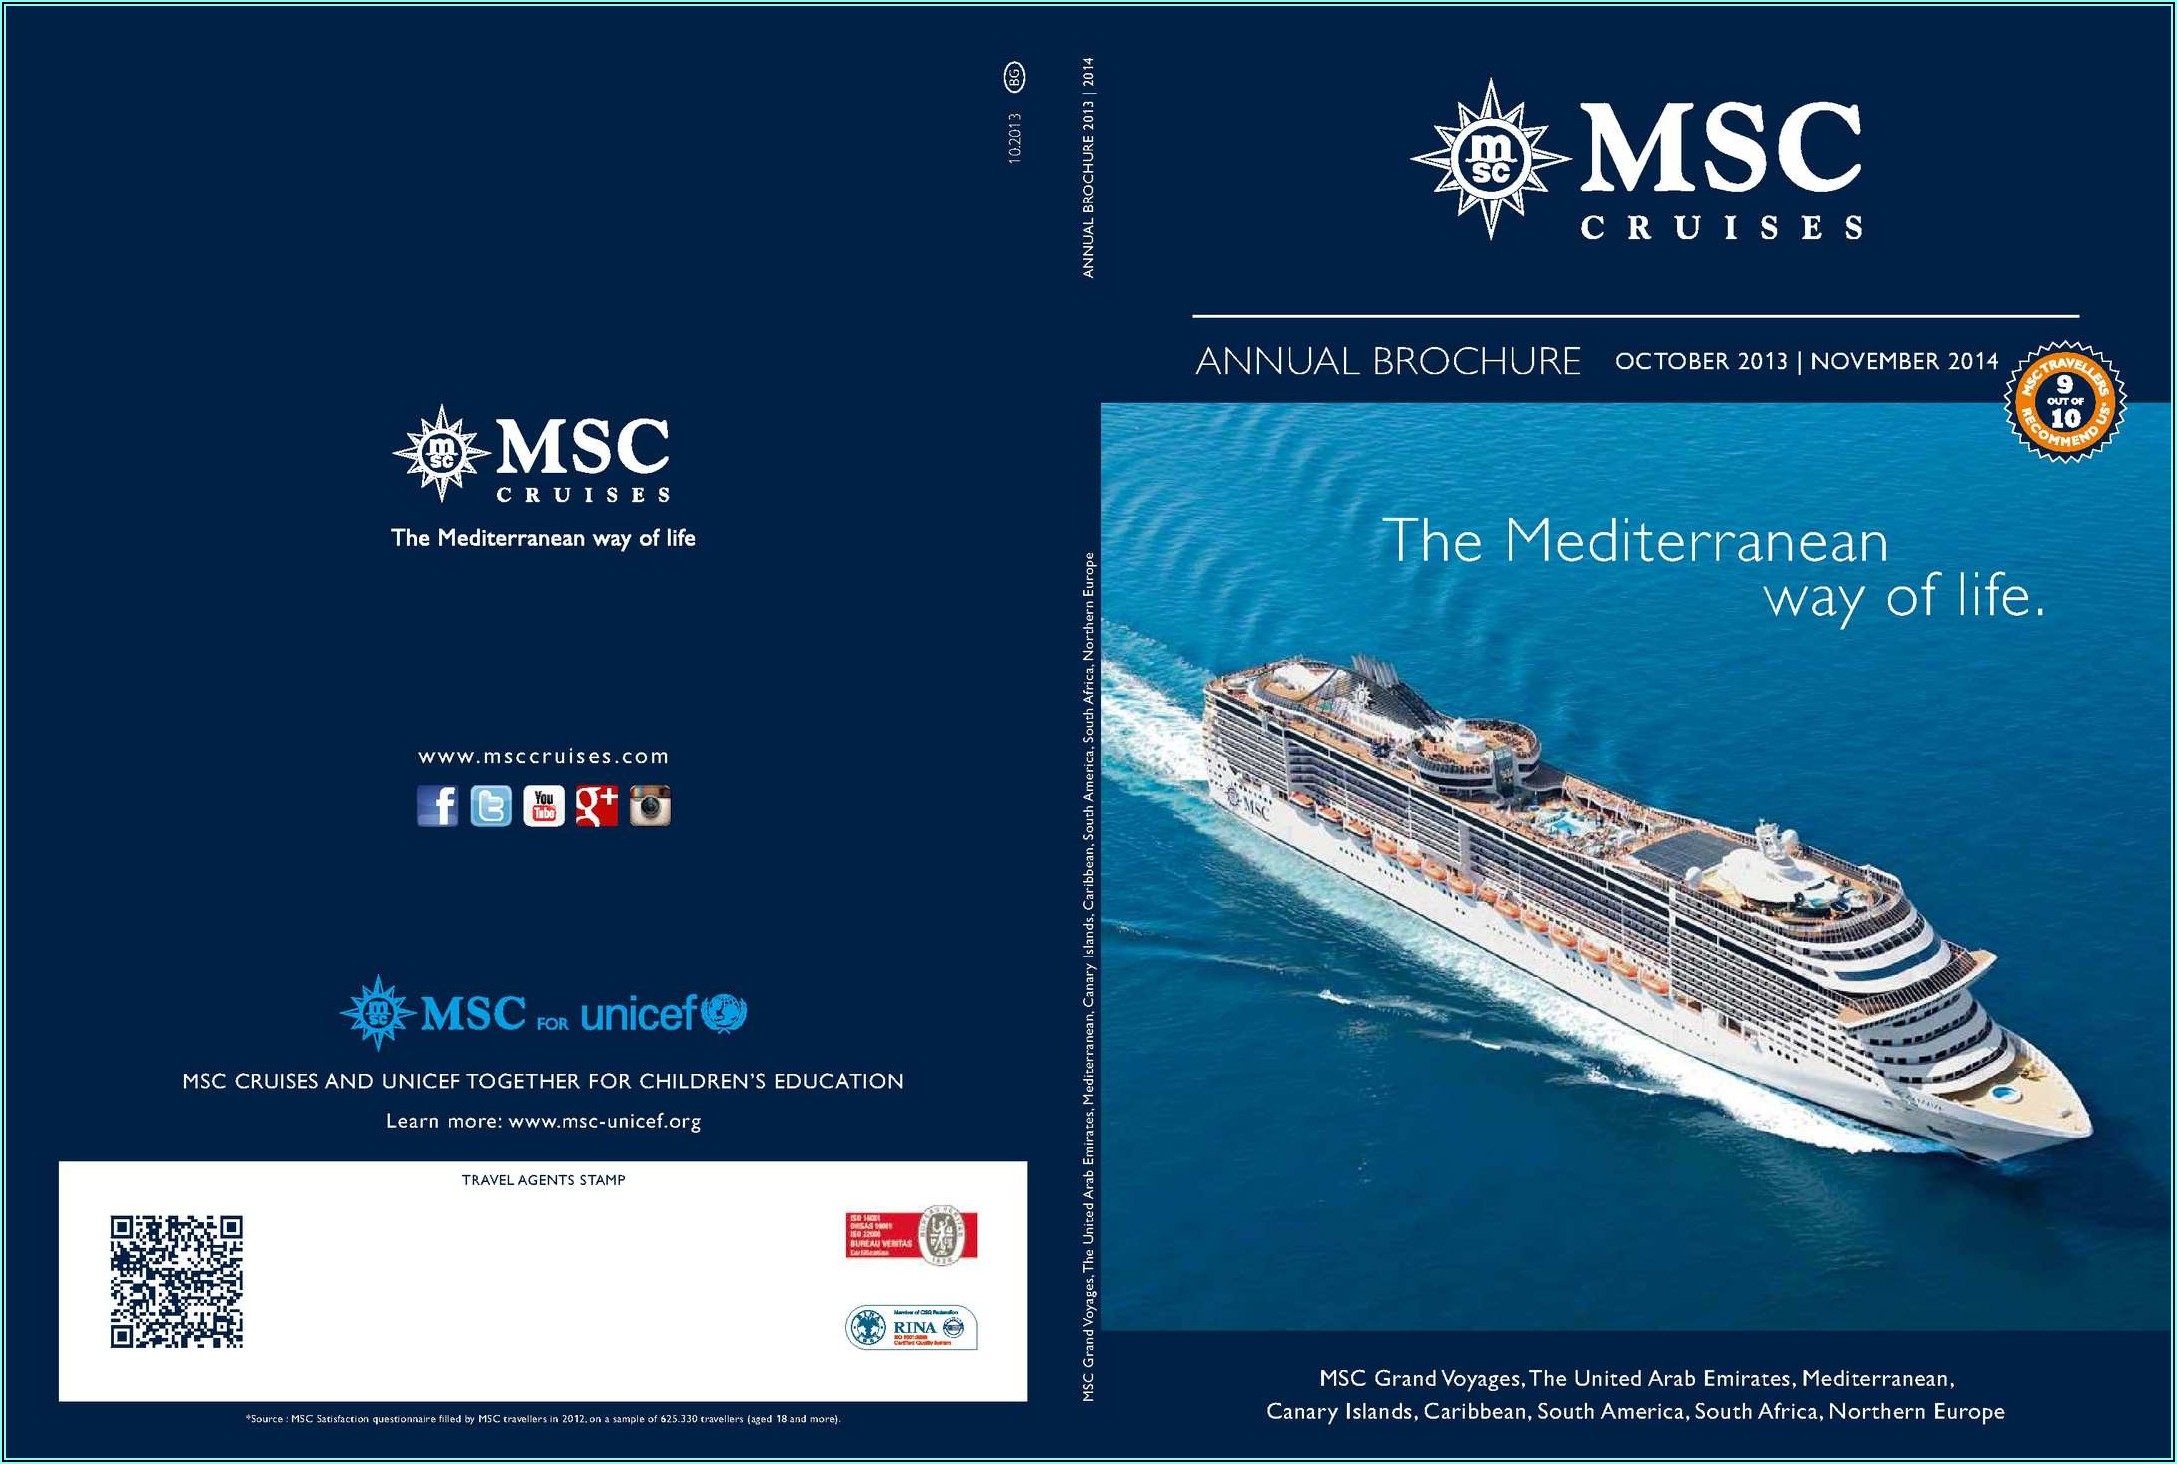 Msc Cruises Order Brochure